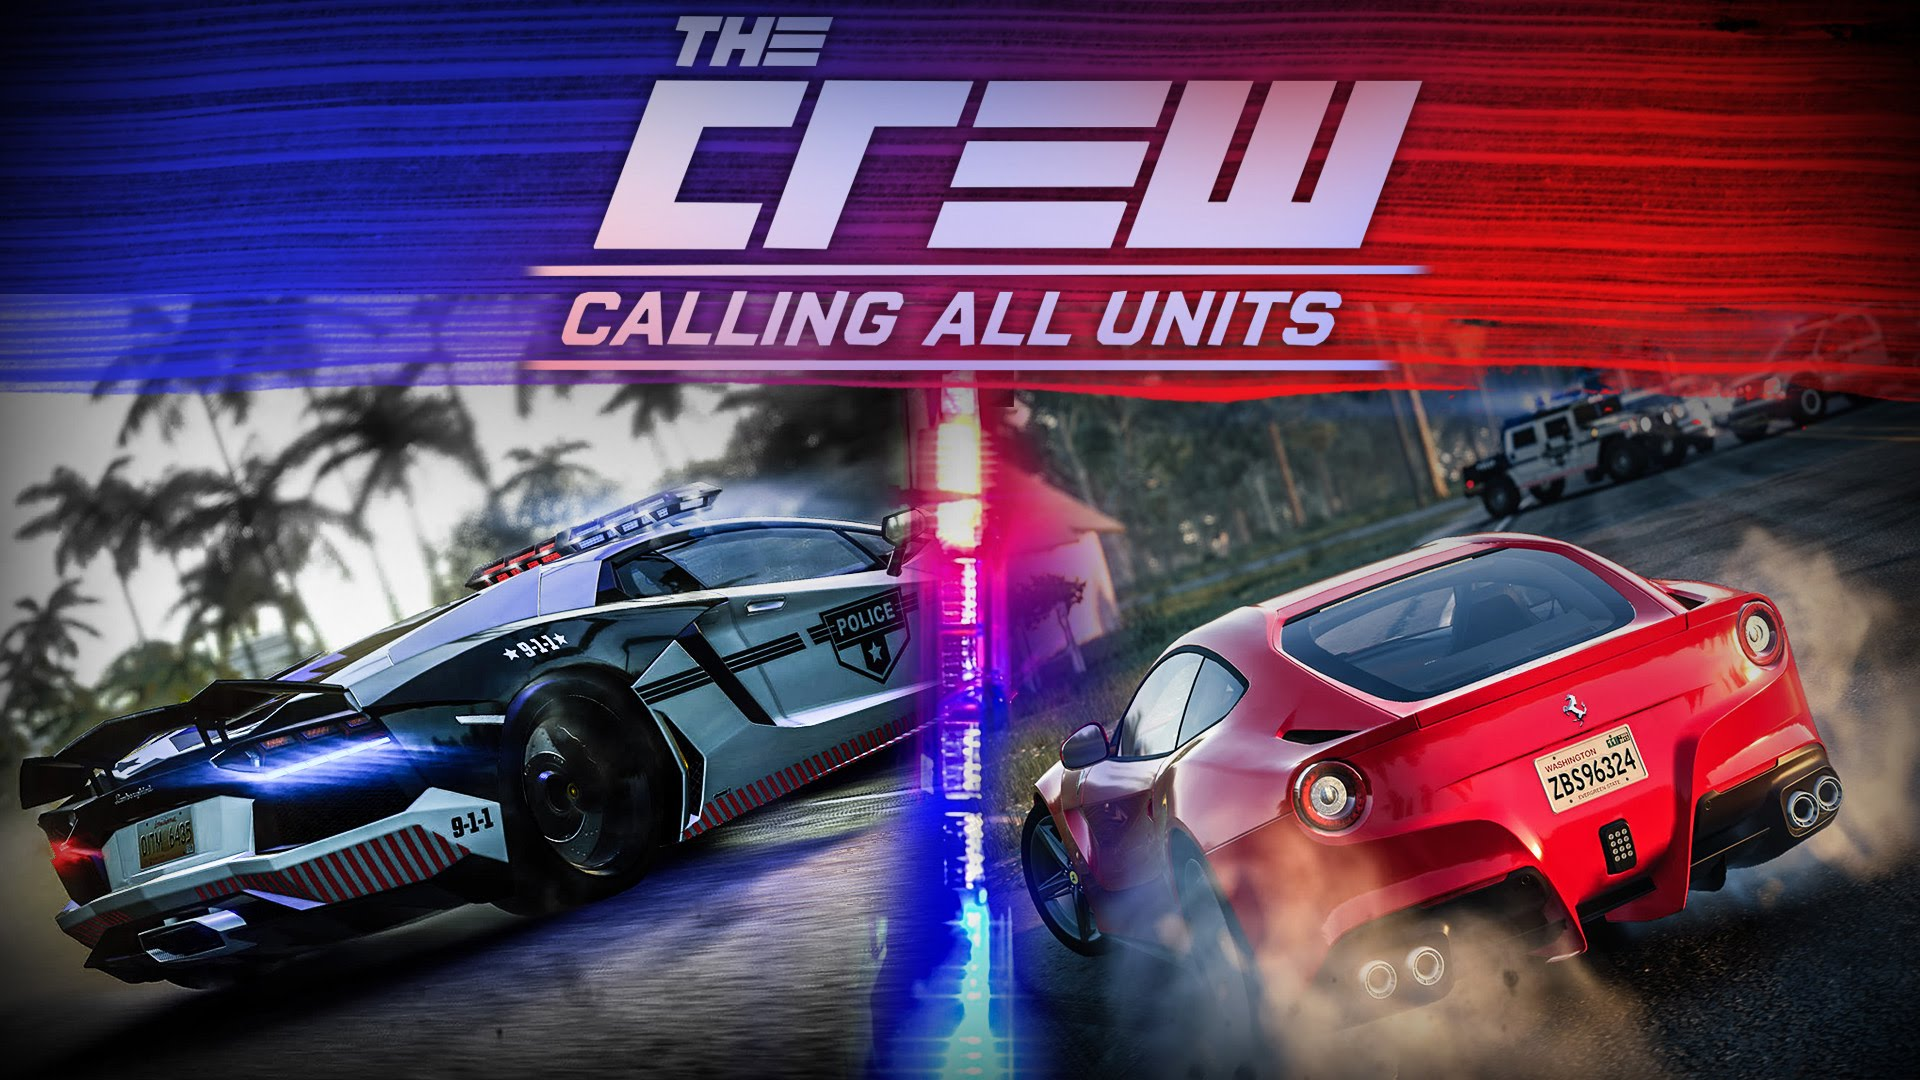 Calling All Units Expansion | THE CREW Wiki | FANDOM powered by Wikia